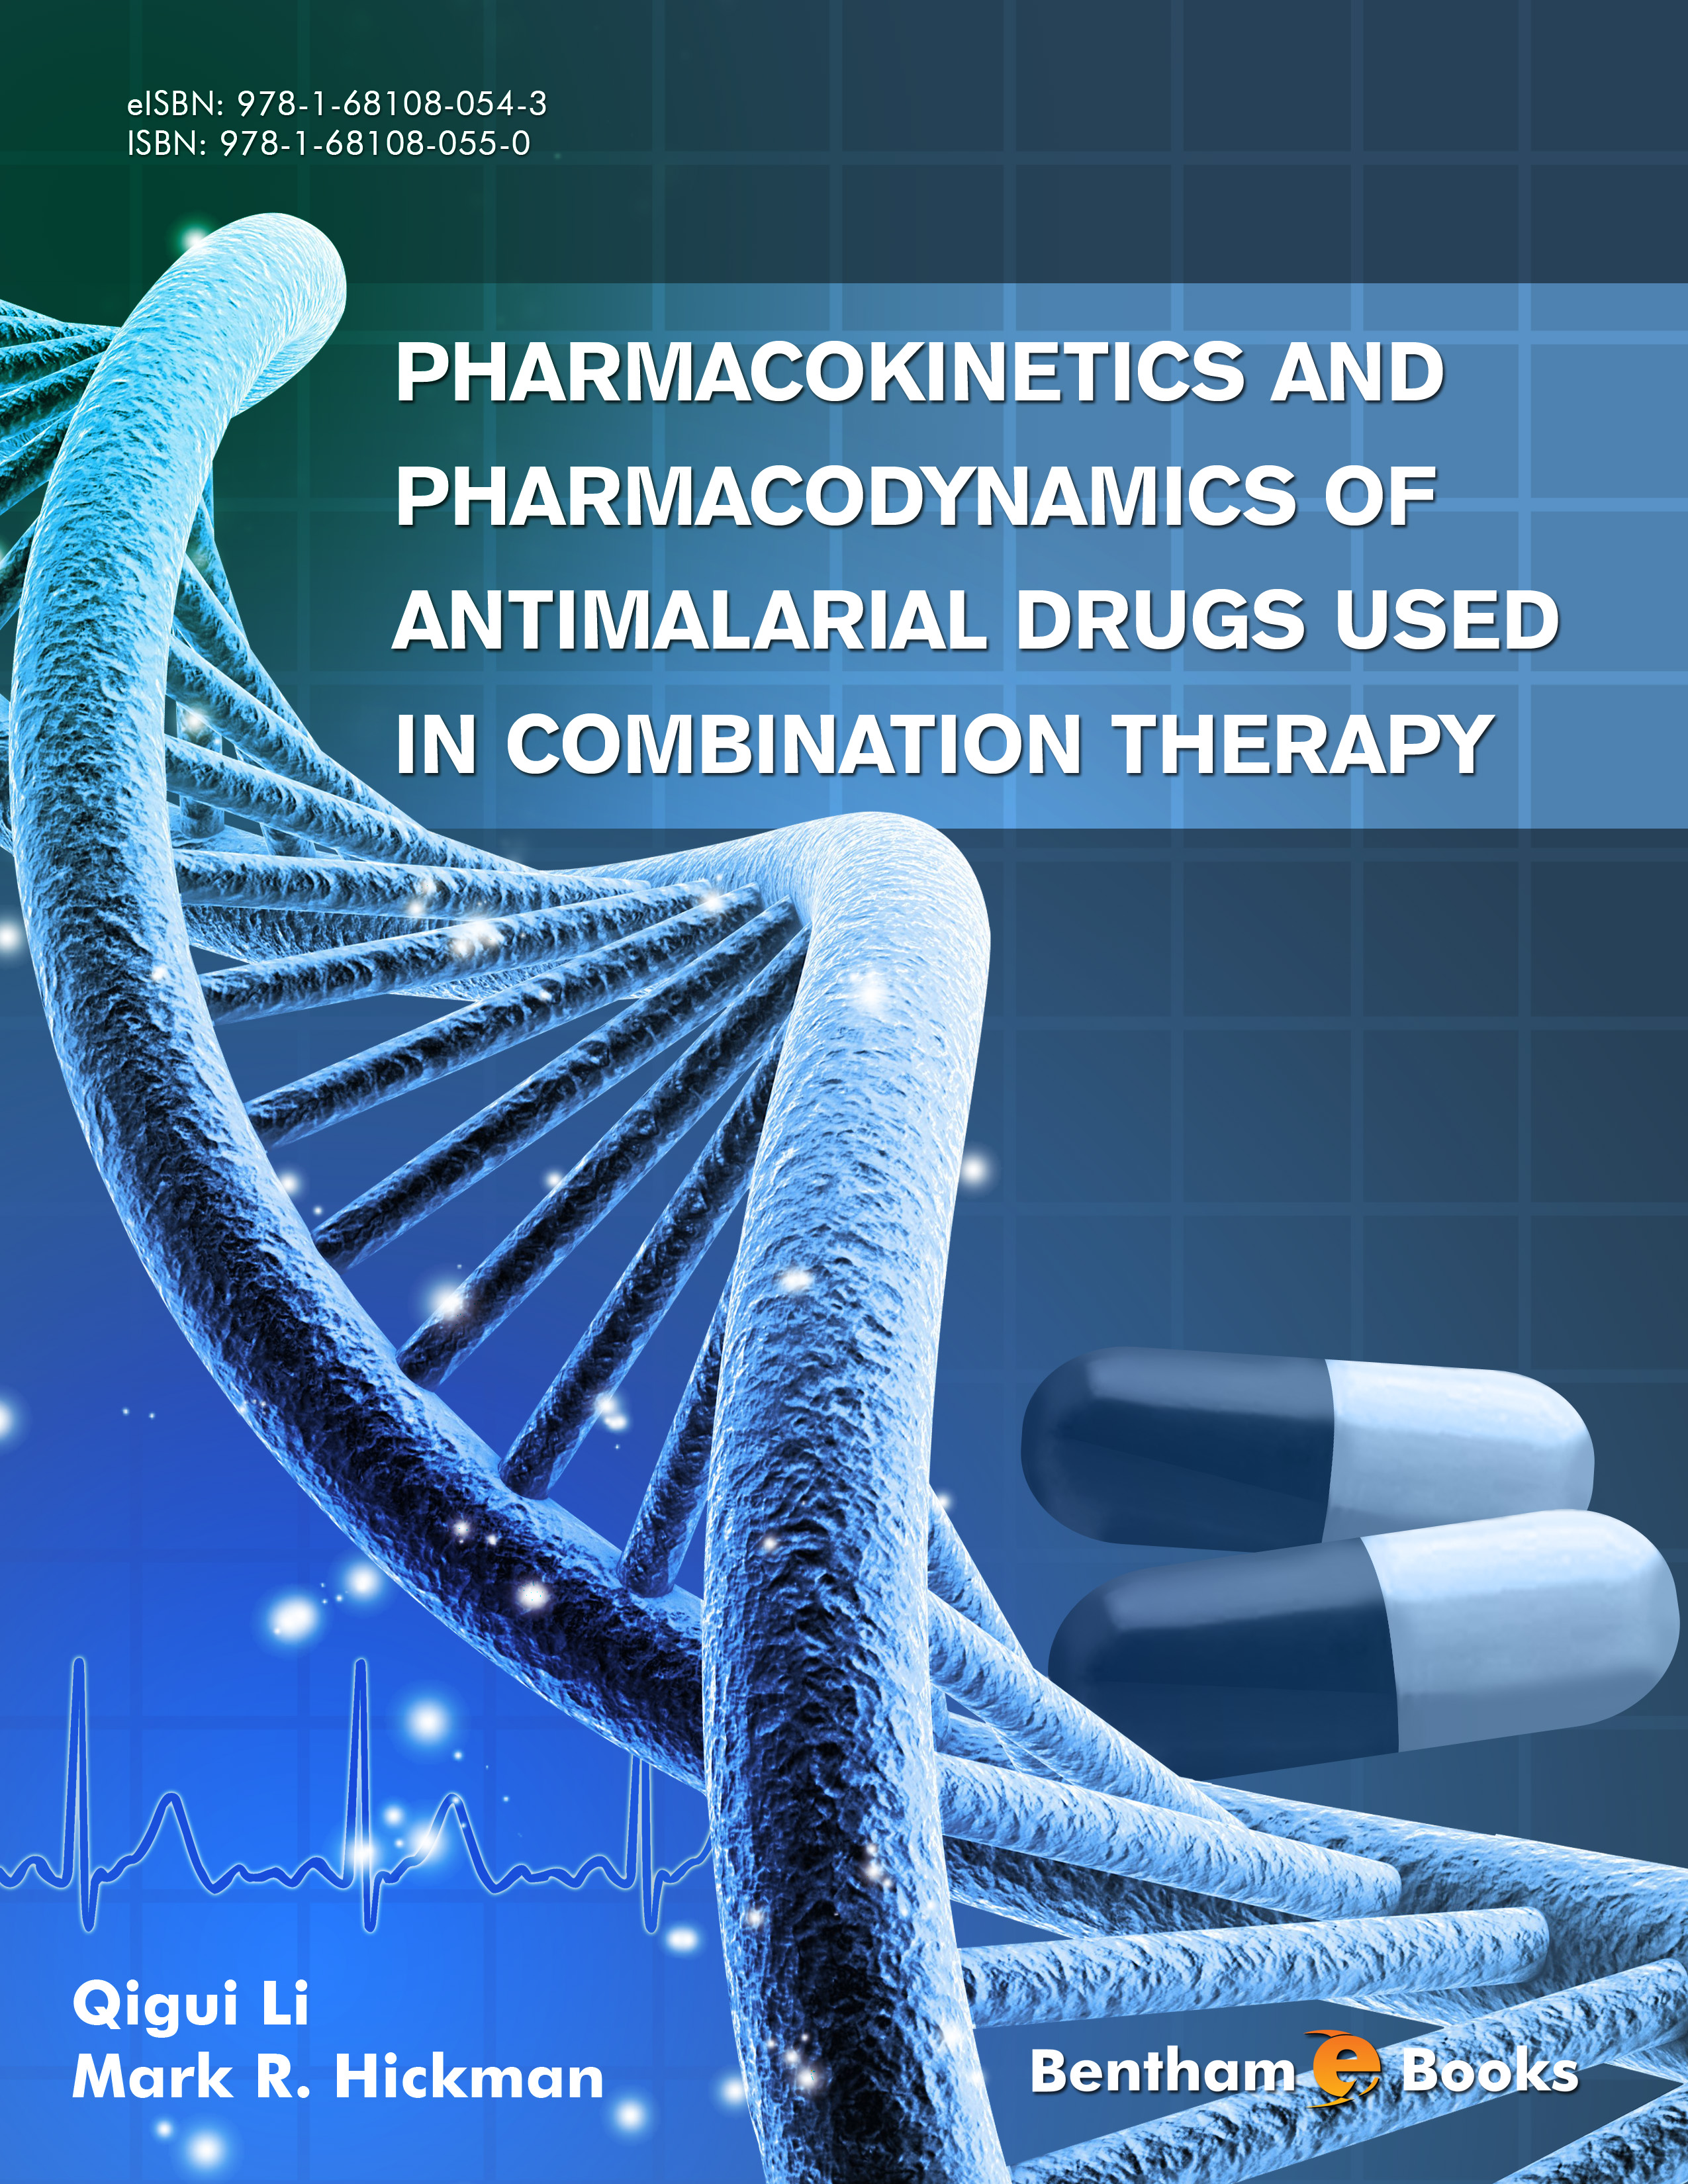 Pharmacokinetics and Pharmacodynamics of Antimalarial Drugs Used in Combination Therapy